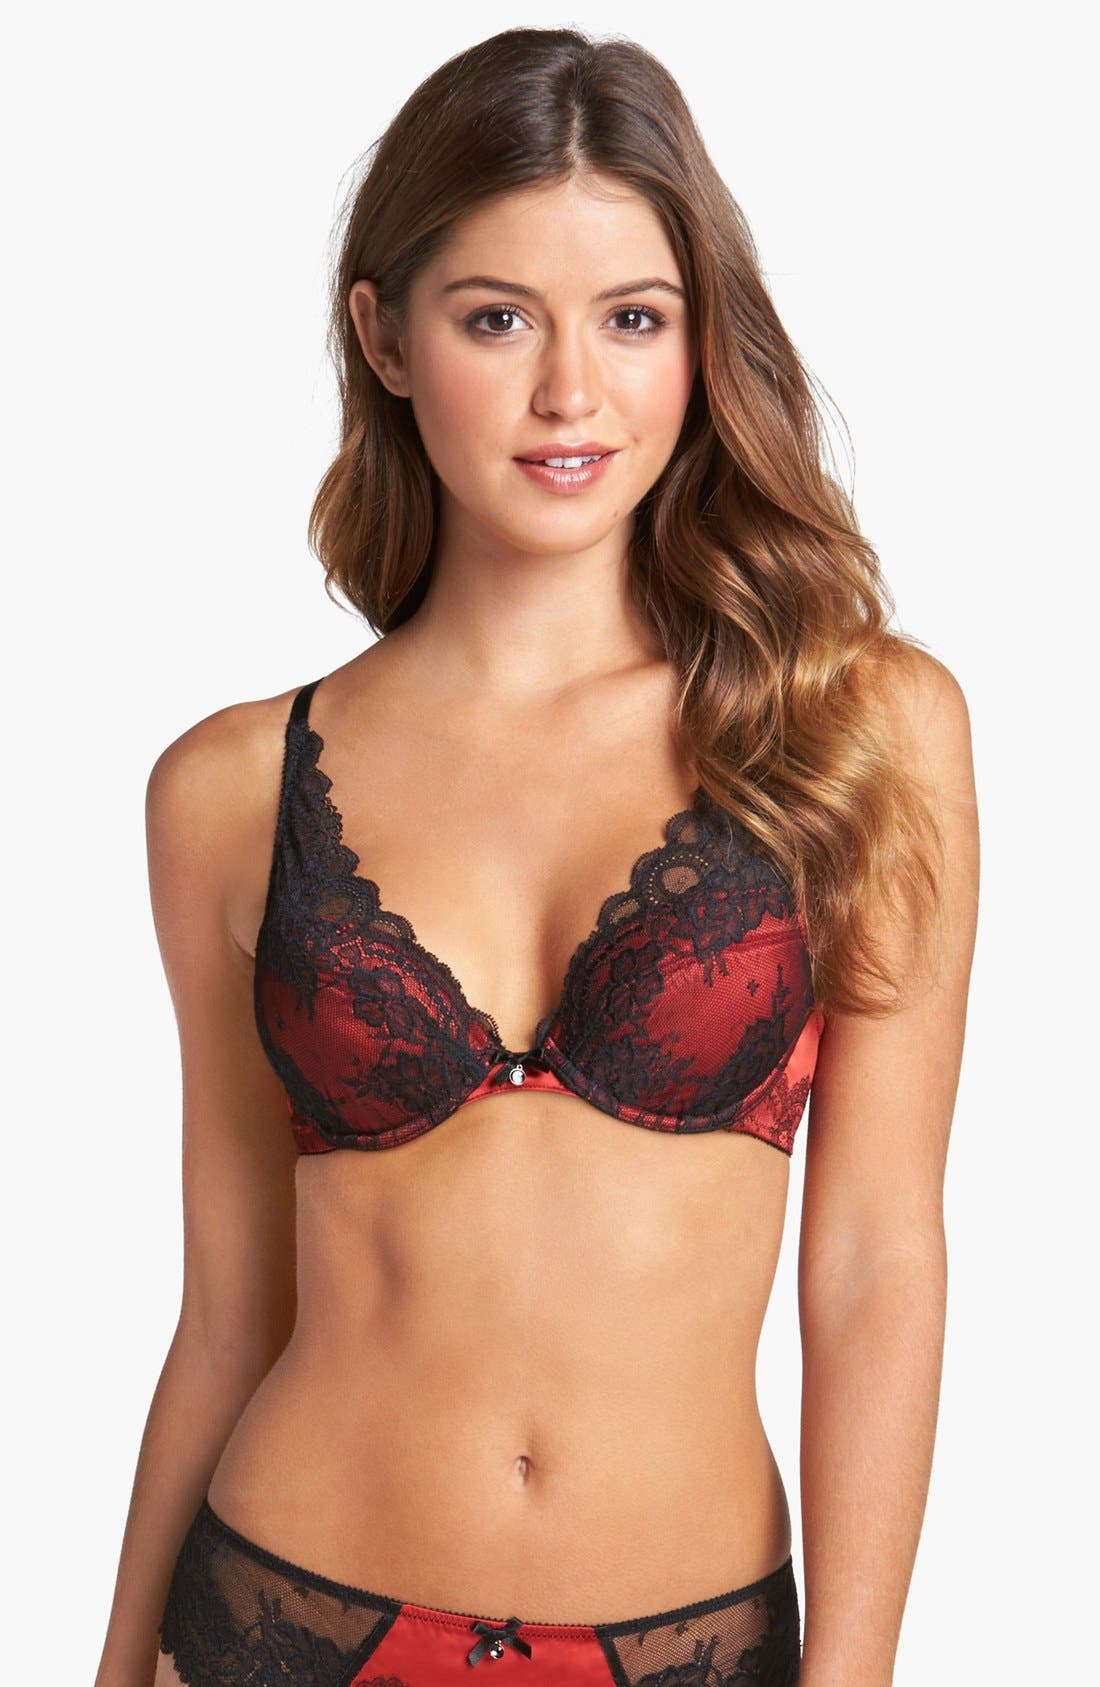 Alternate Image 1 Selected - Chantelle Intimates 'Paris Paris' Underwire Push Up Bra